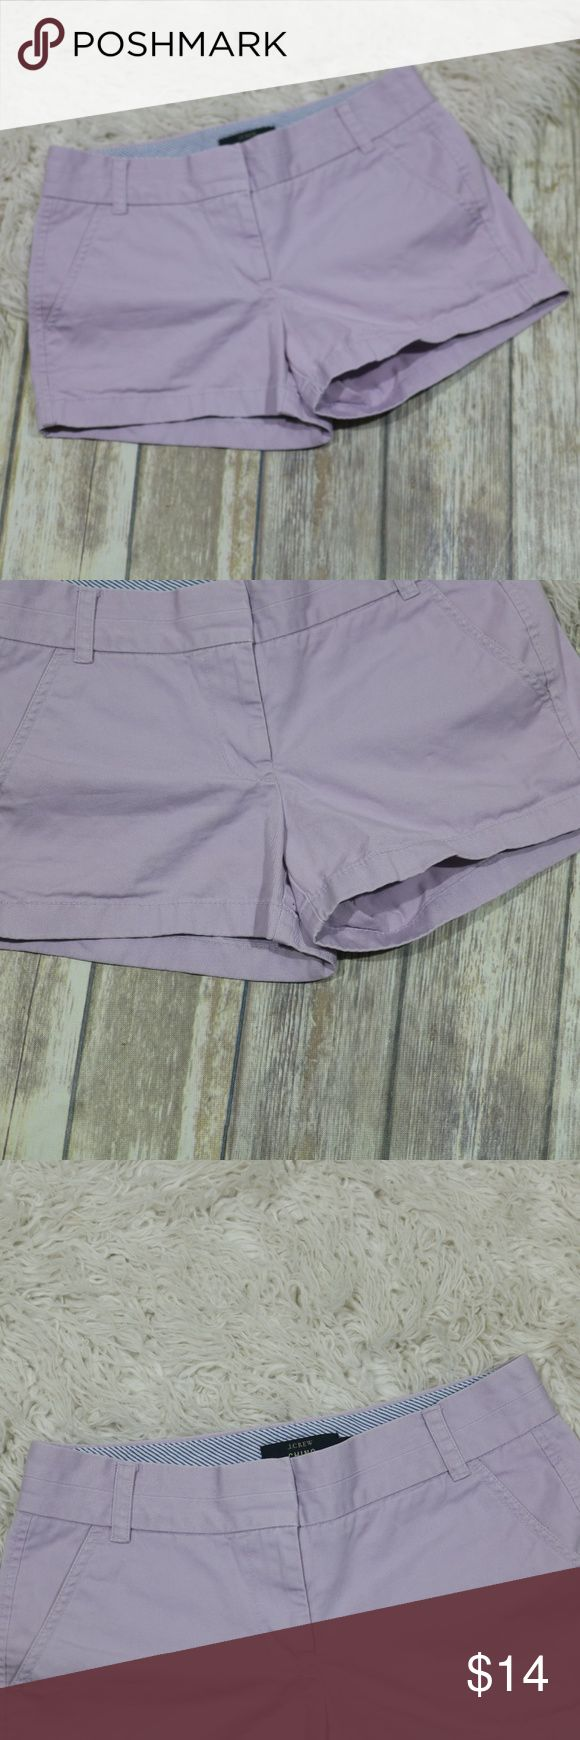 """J. Crew 3"""" Inseam Chino Shorts Purple Shorts 61456 J. Crew women's 3"""" chino shorts.  Size 2.  Style 61456.  100% cotton.  Machine wash.  In good, preowned condition with no flaws noted.  No trades, offers welcome.  Measures approximately 15"""" at back waist, 12"""" waist to hem, 3"""" rise. J. Crew Shorts"""